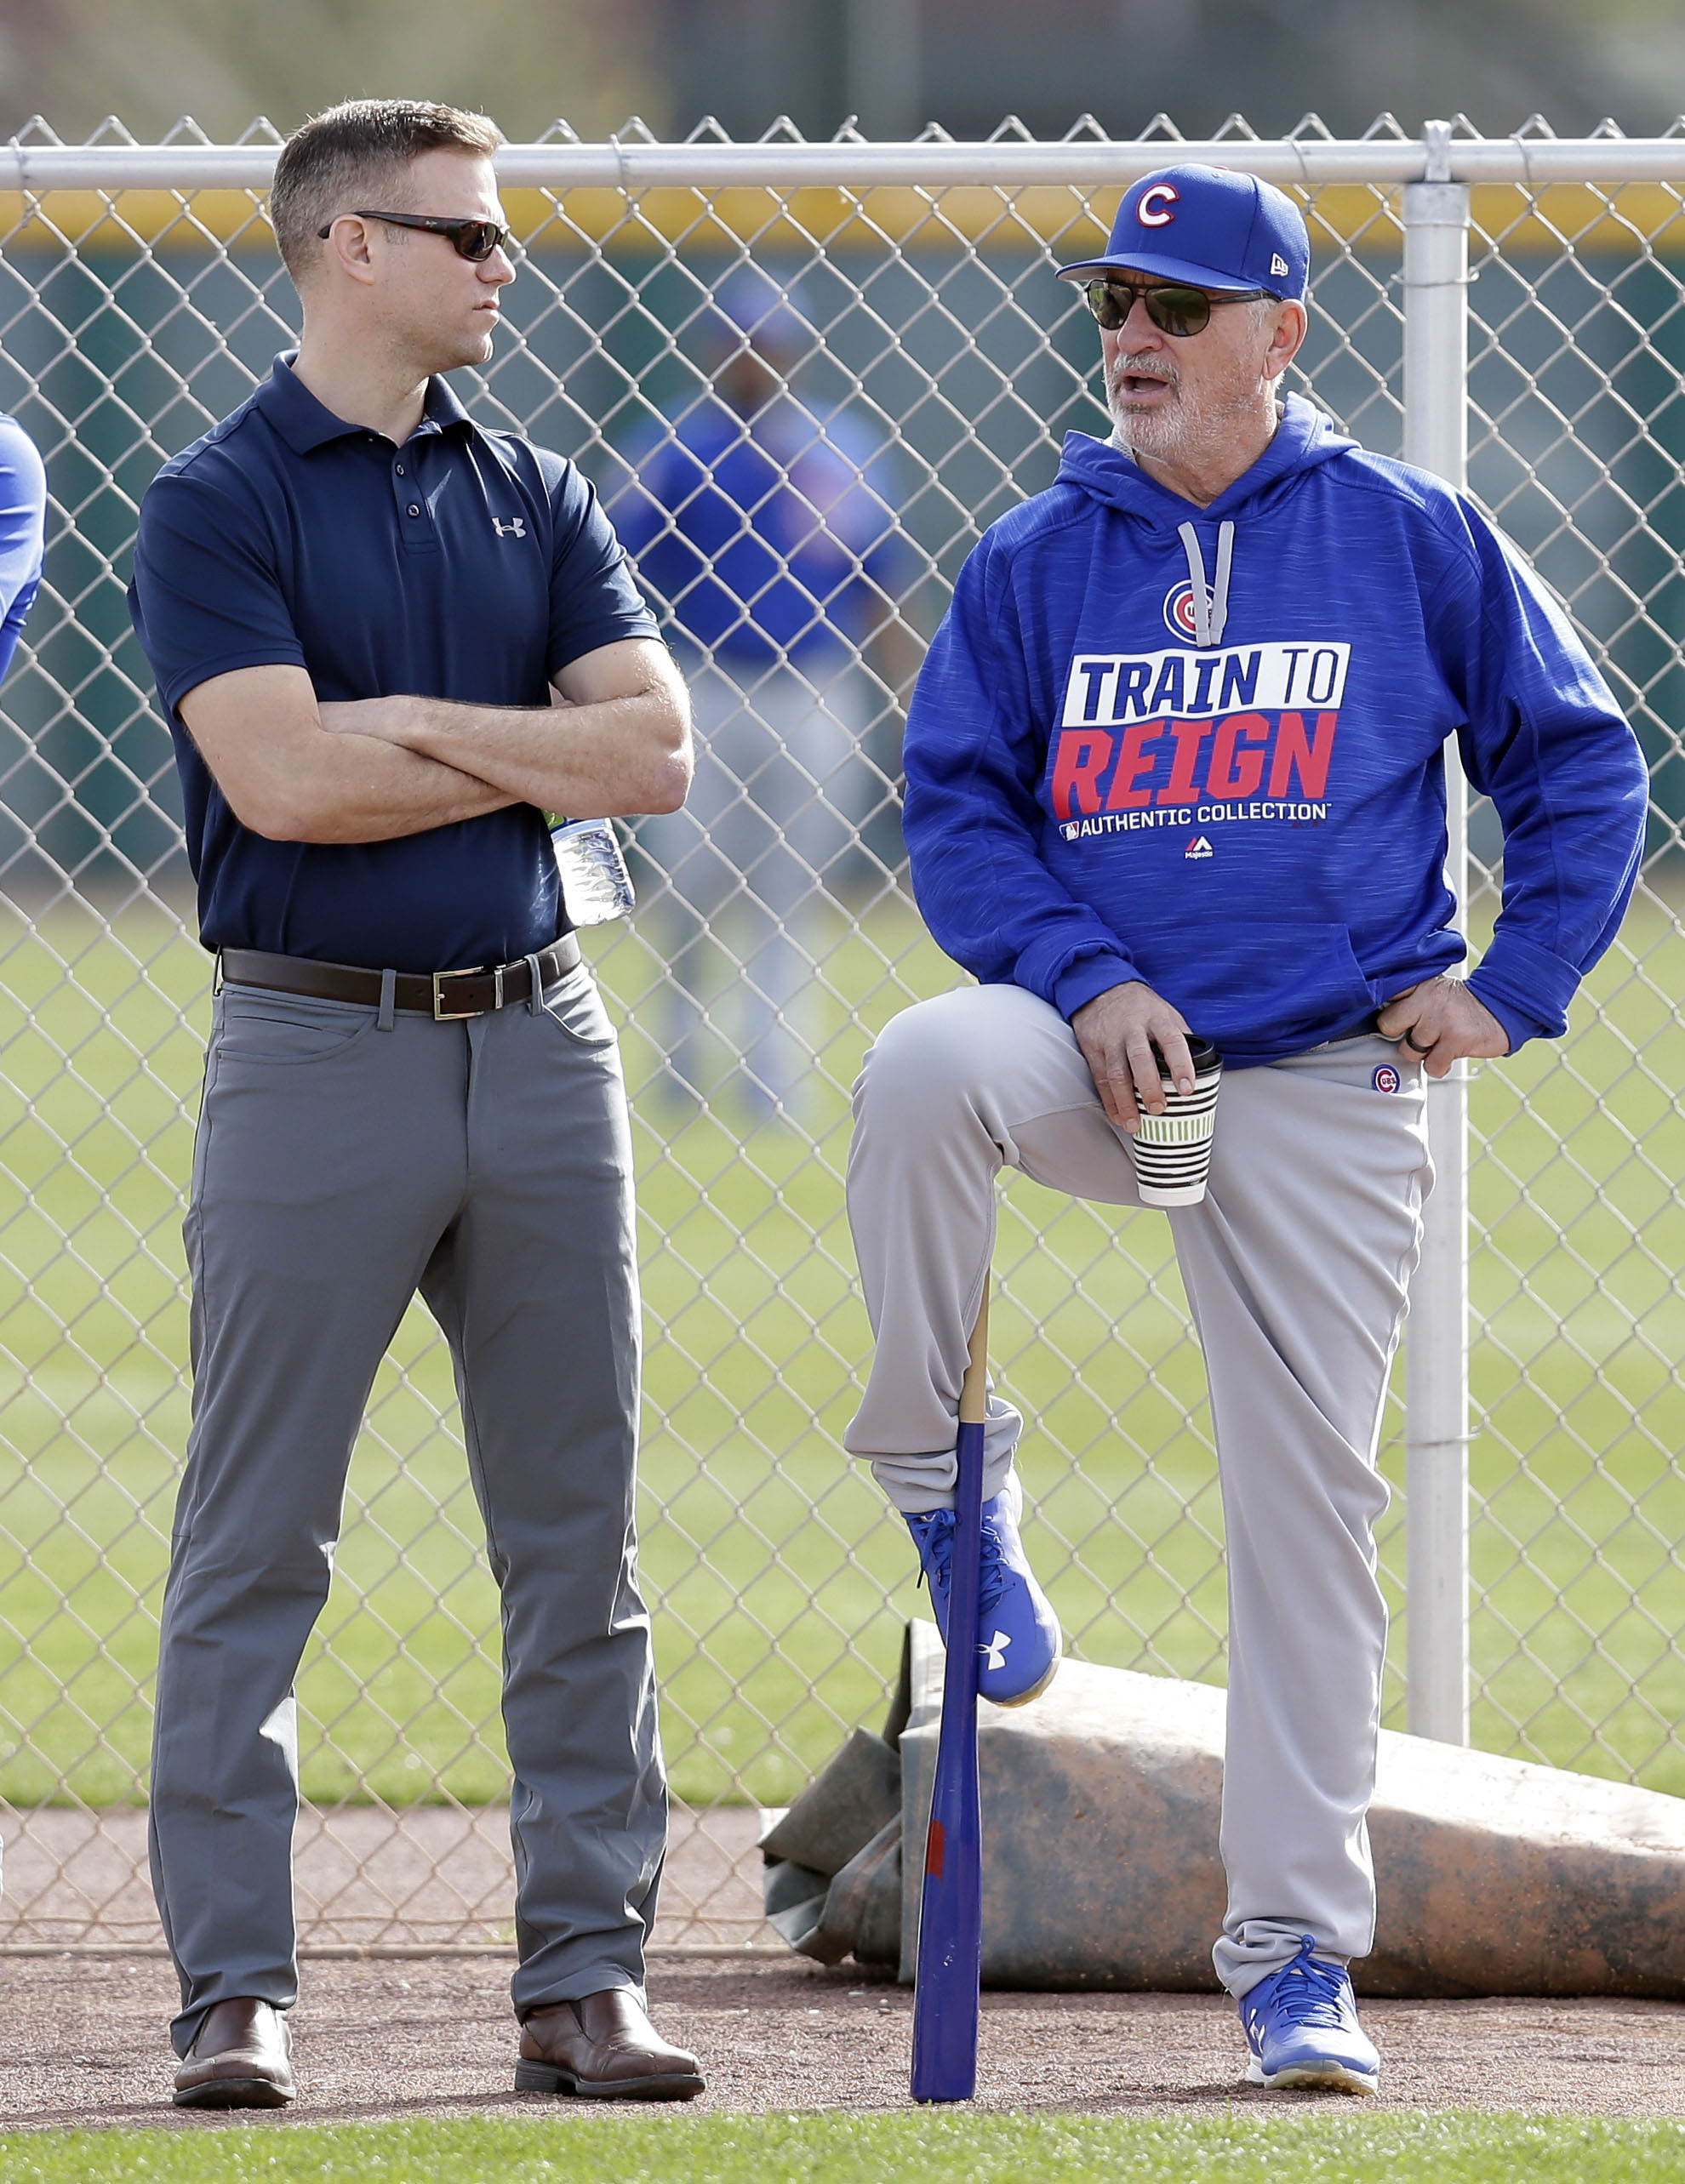 Chicago Cubs President Theo Epstein Named World's Greatest Leader By Fortune Magazine